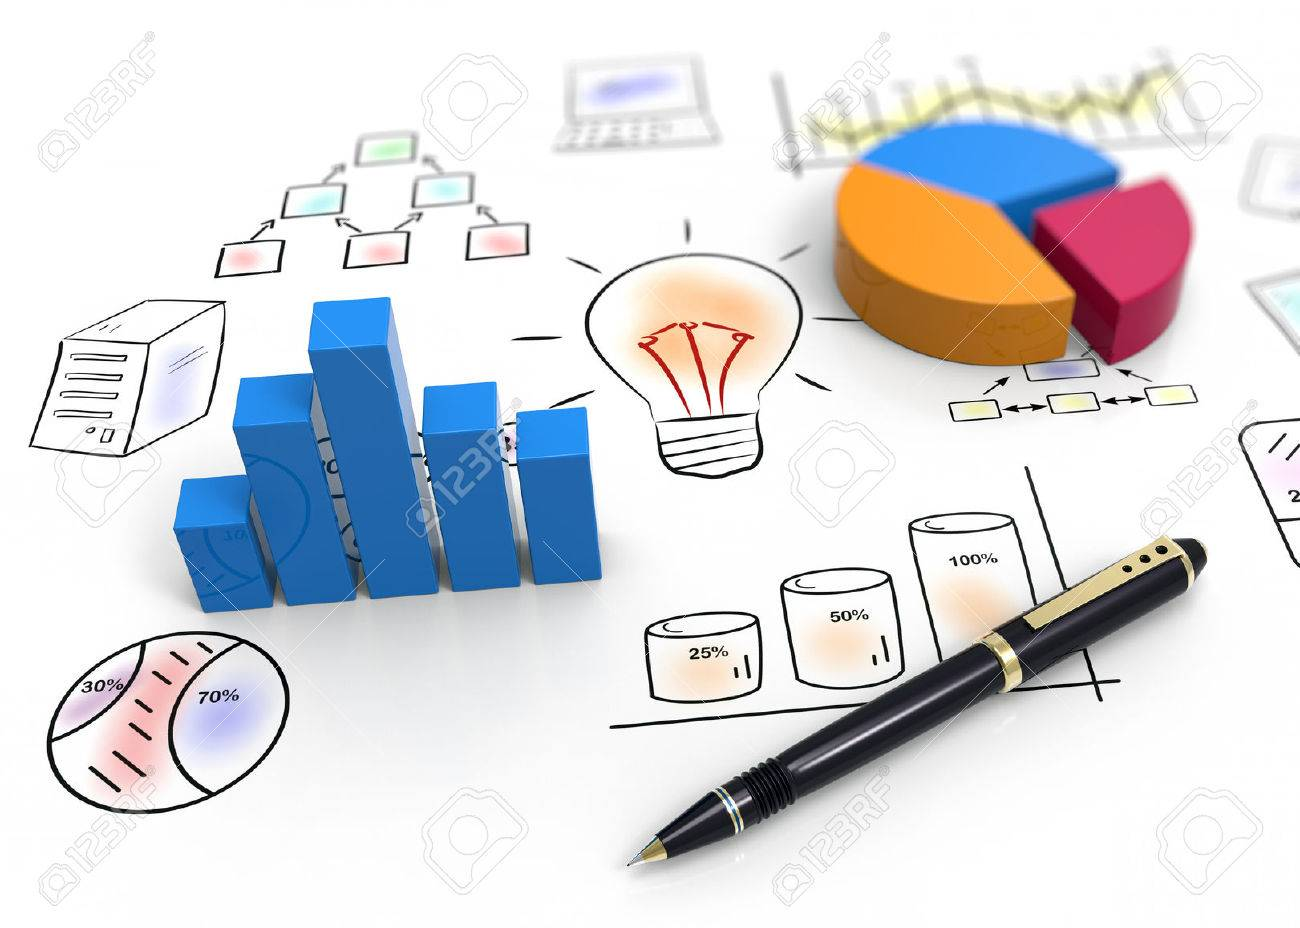 Business charts and graphs as concept - 25579864